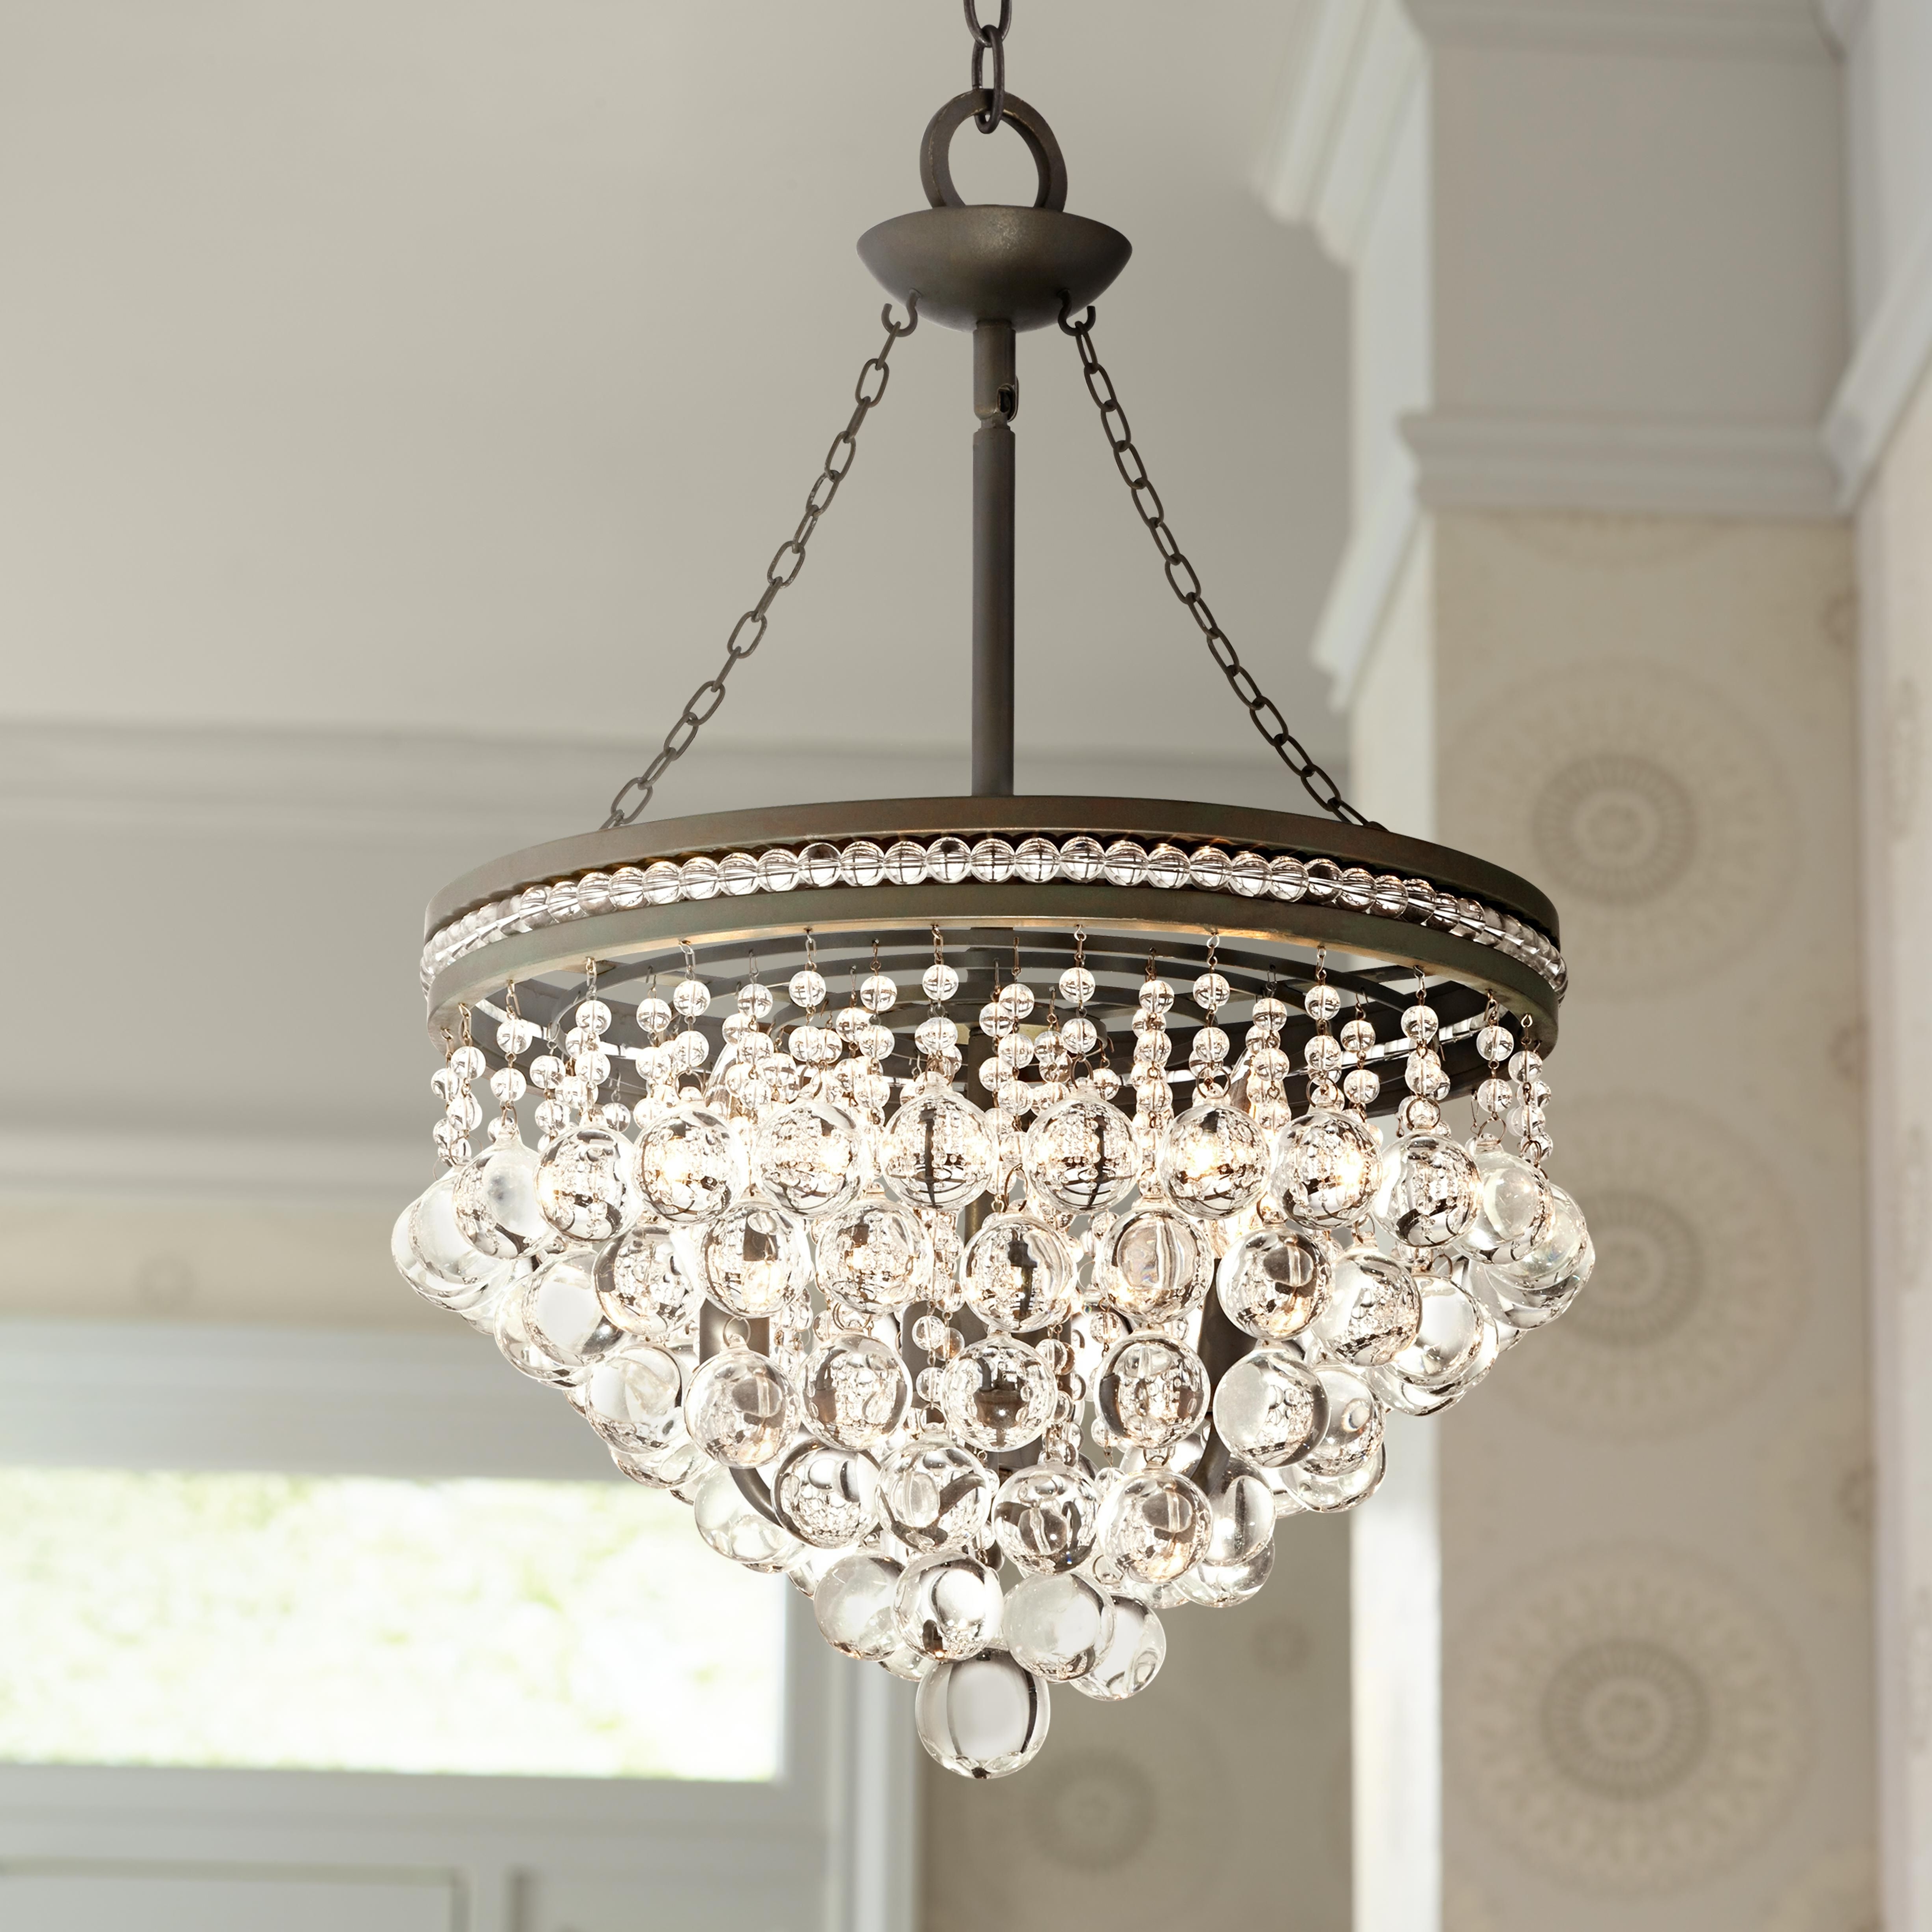 Chandeliers Throughout Tiny Chandeliers (View 14 of 15)